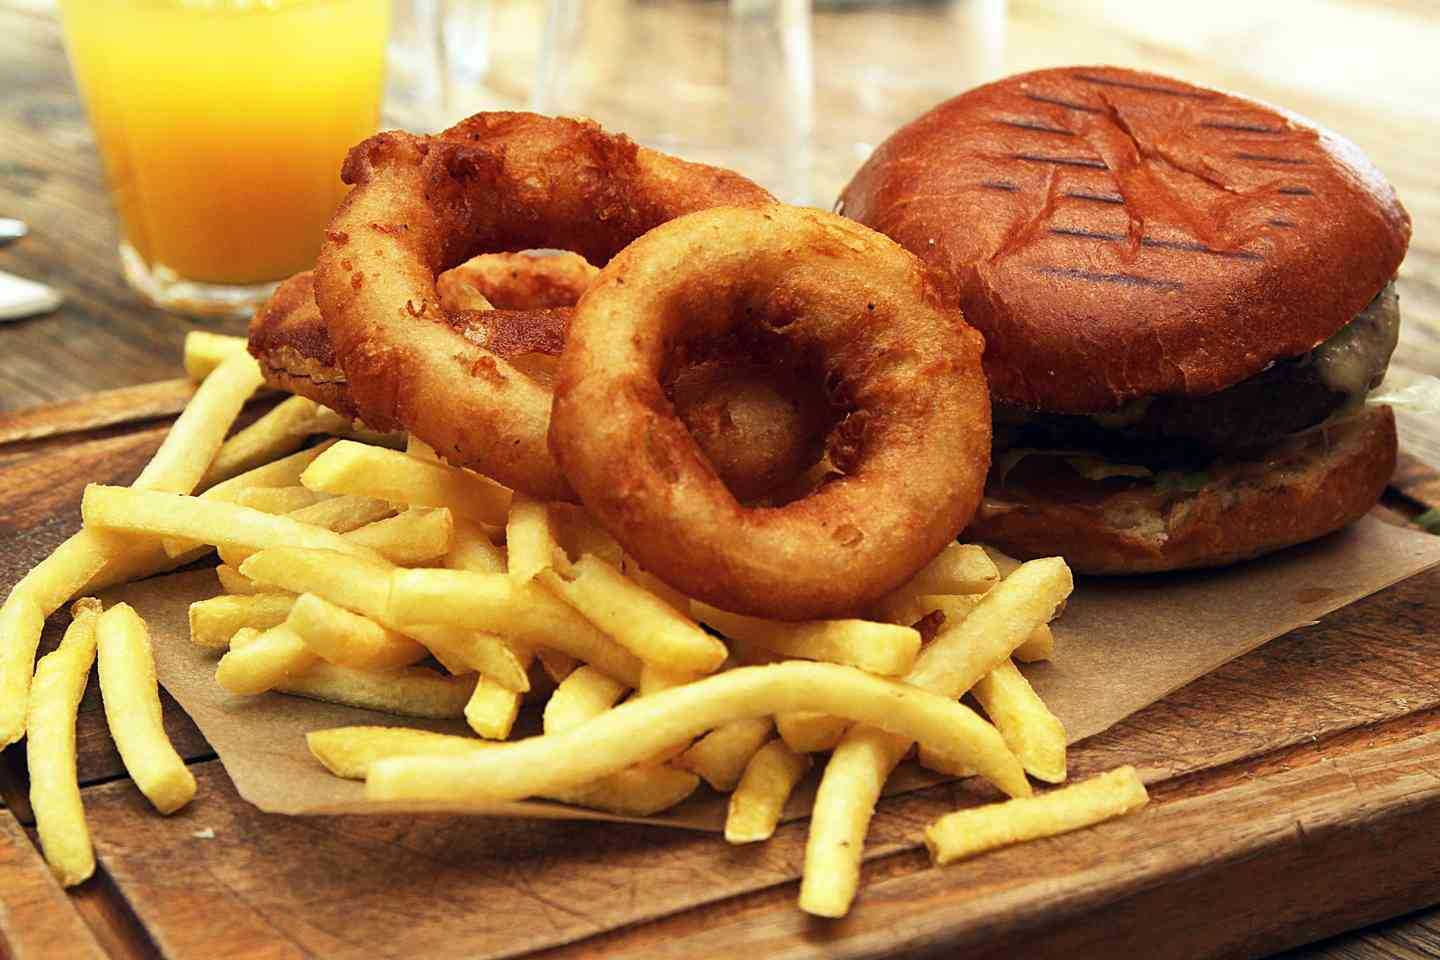 Hamburger with onion rings and fries